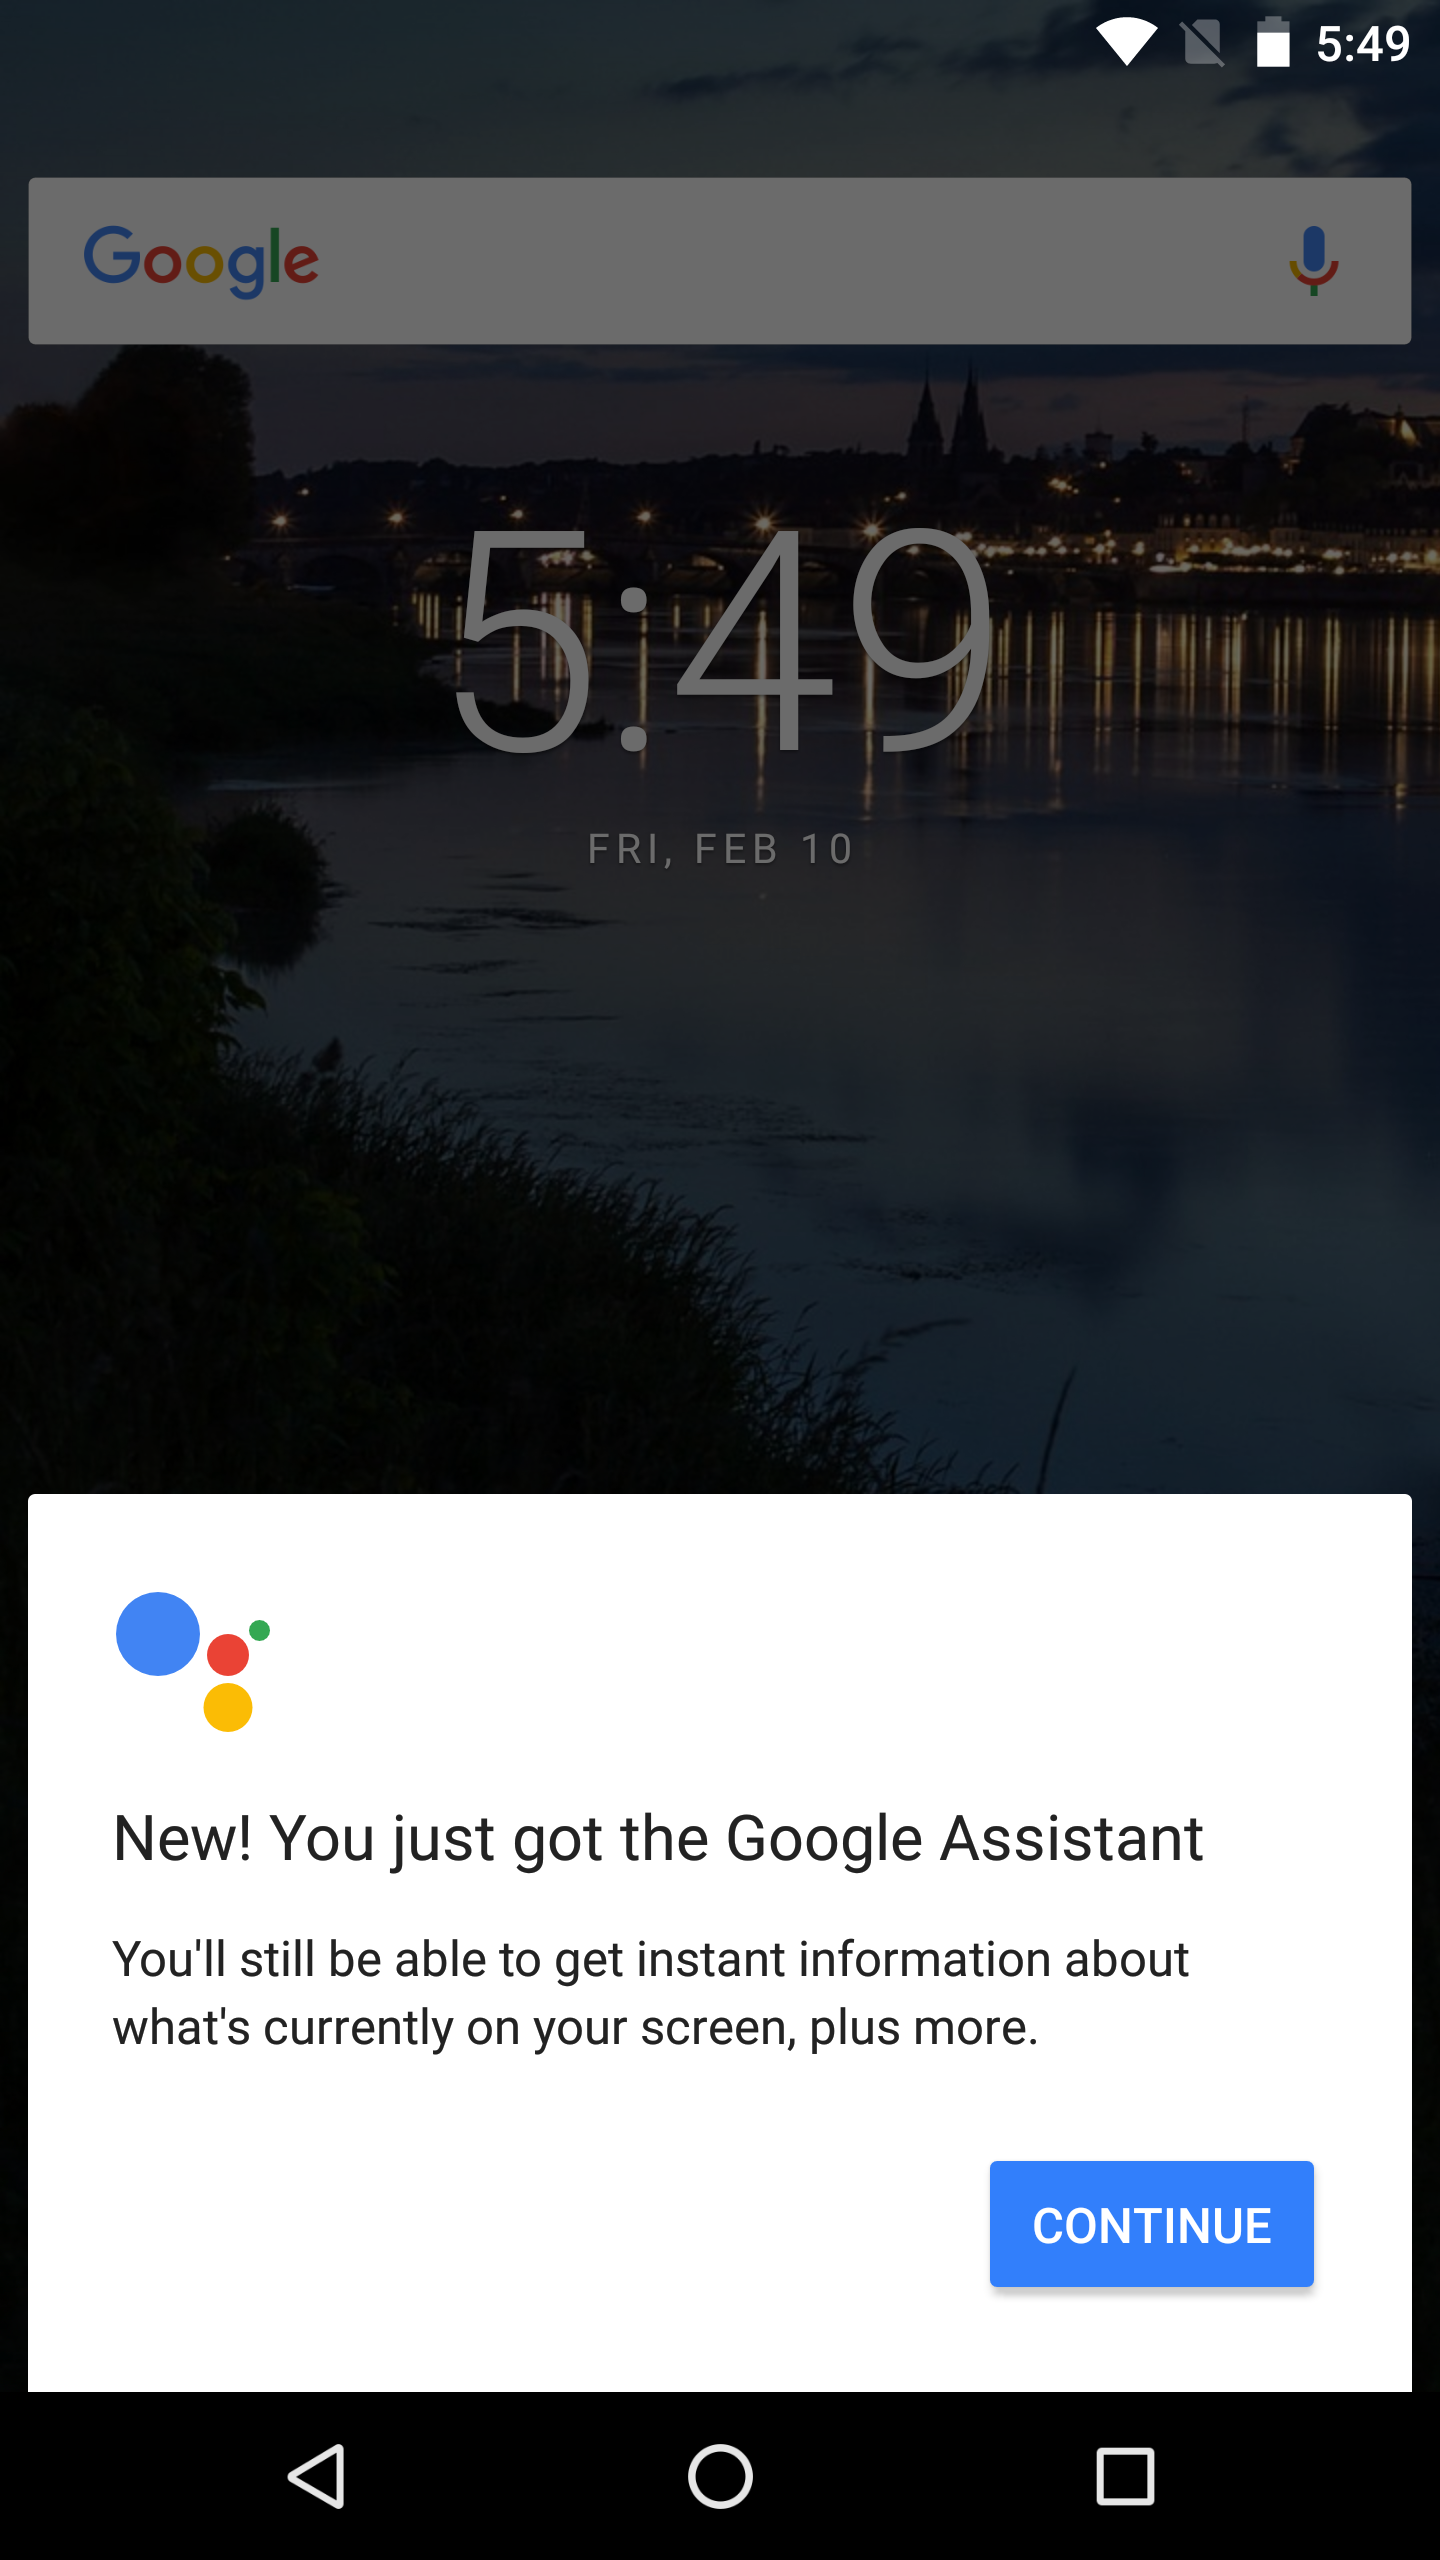 Update: May enable Google Assistant on non-Pixels] Google